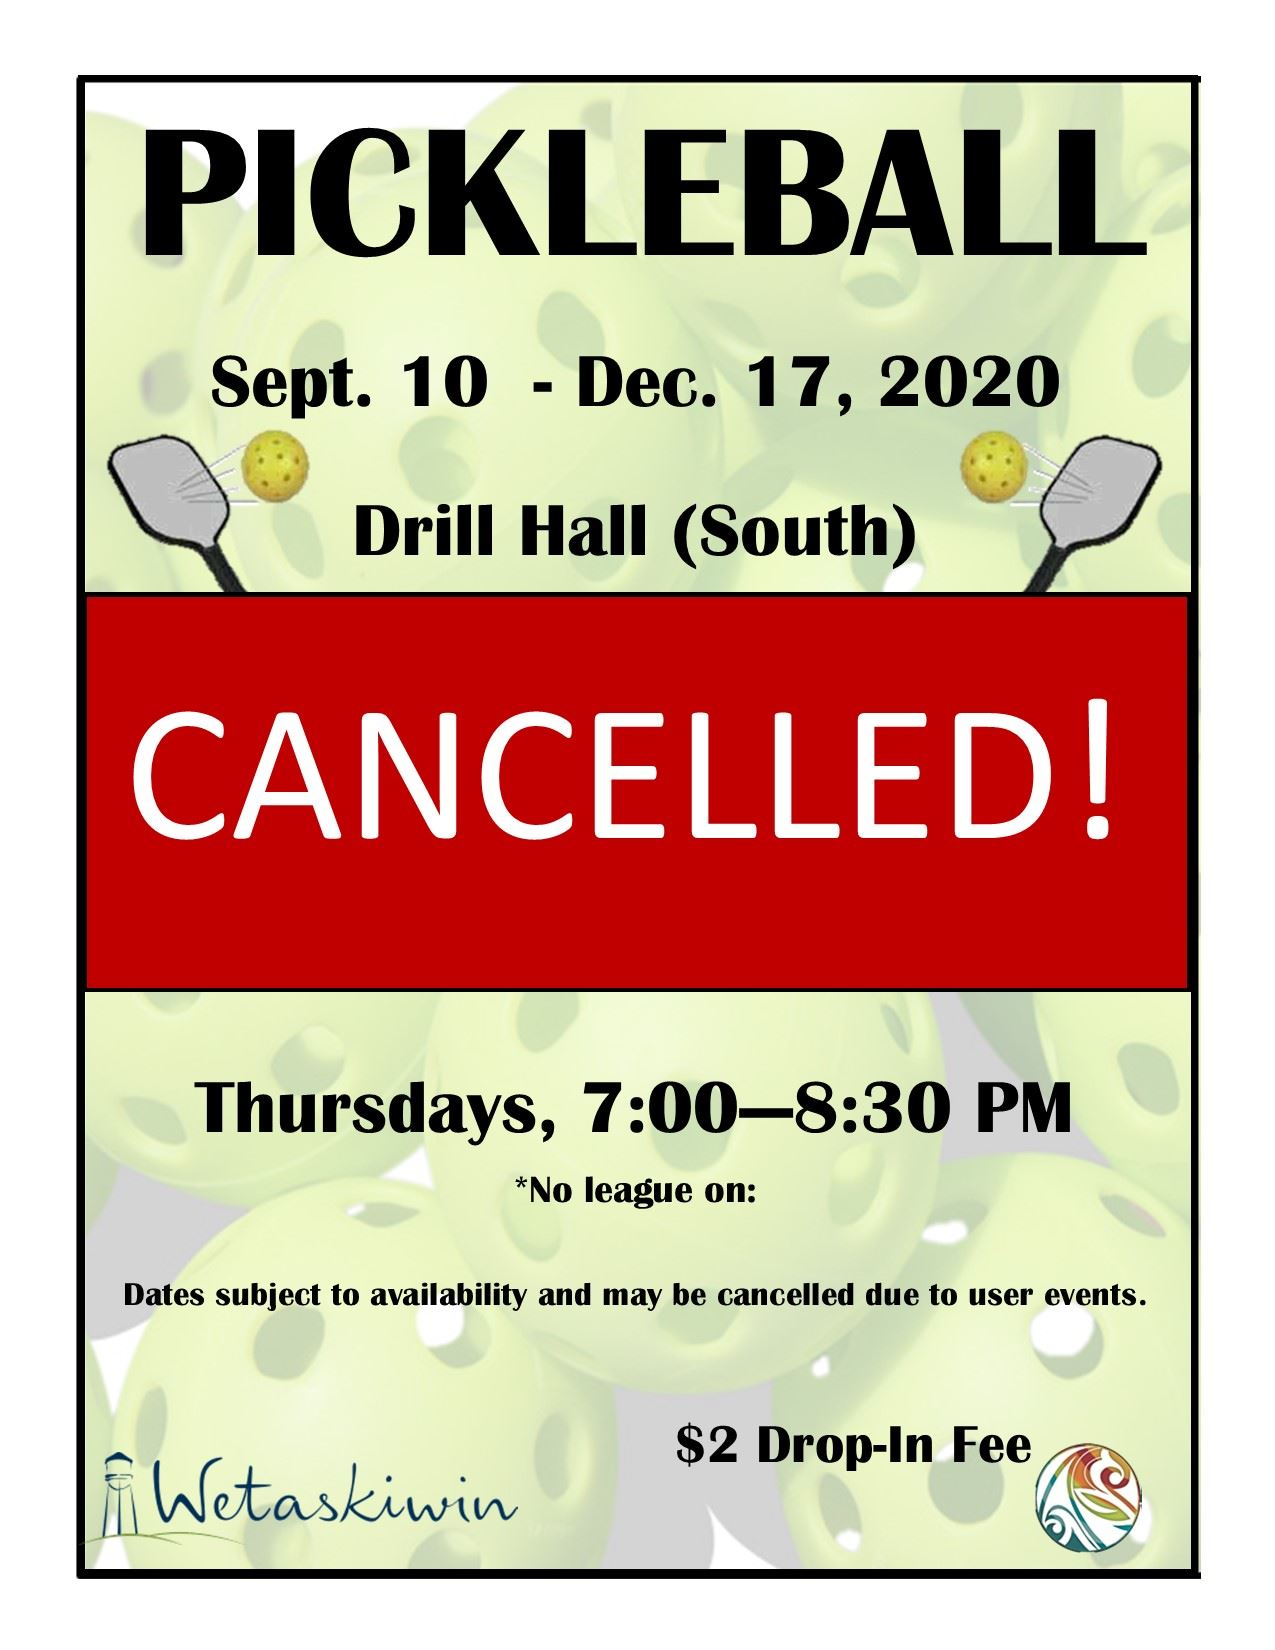 CANCELLED! Pickleball Fall 2020 Poster